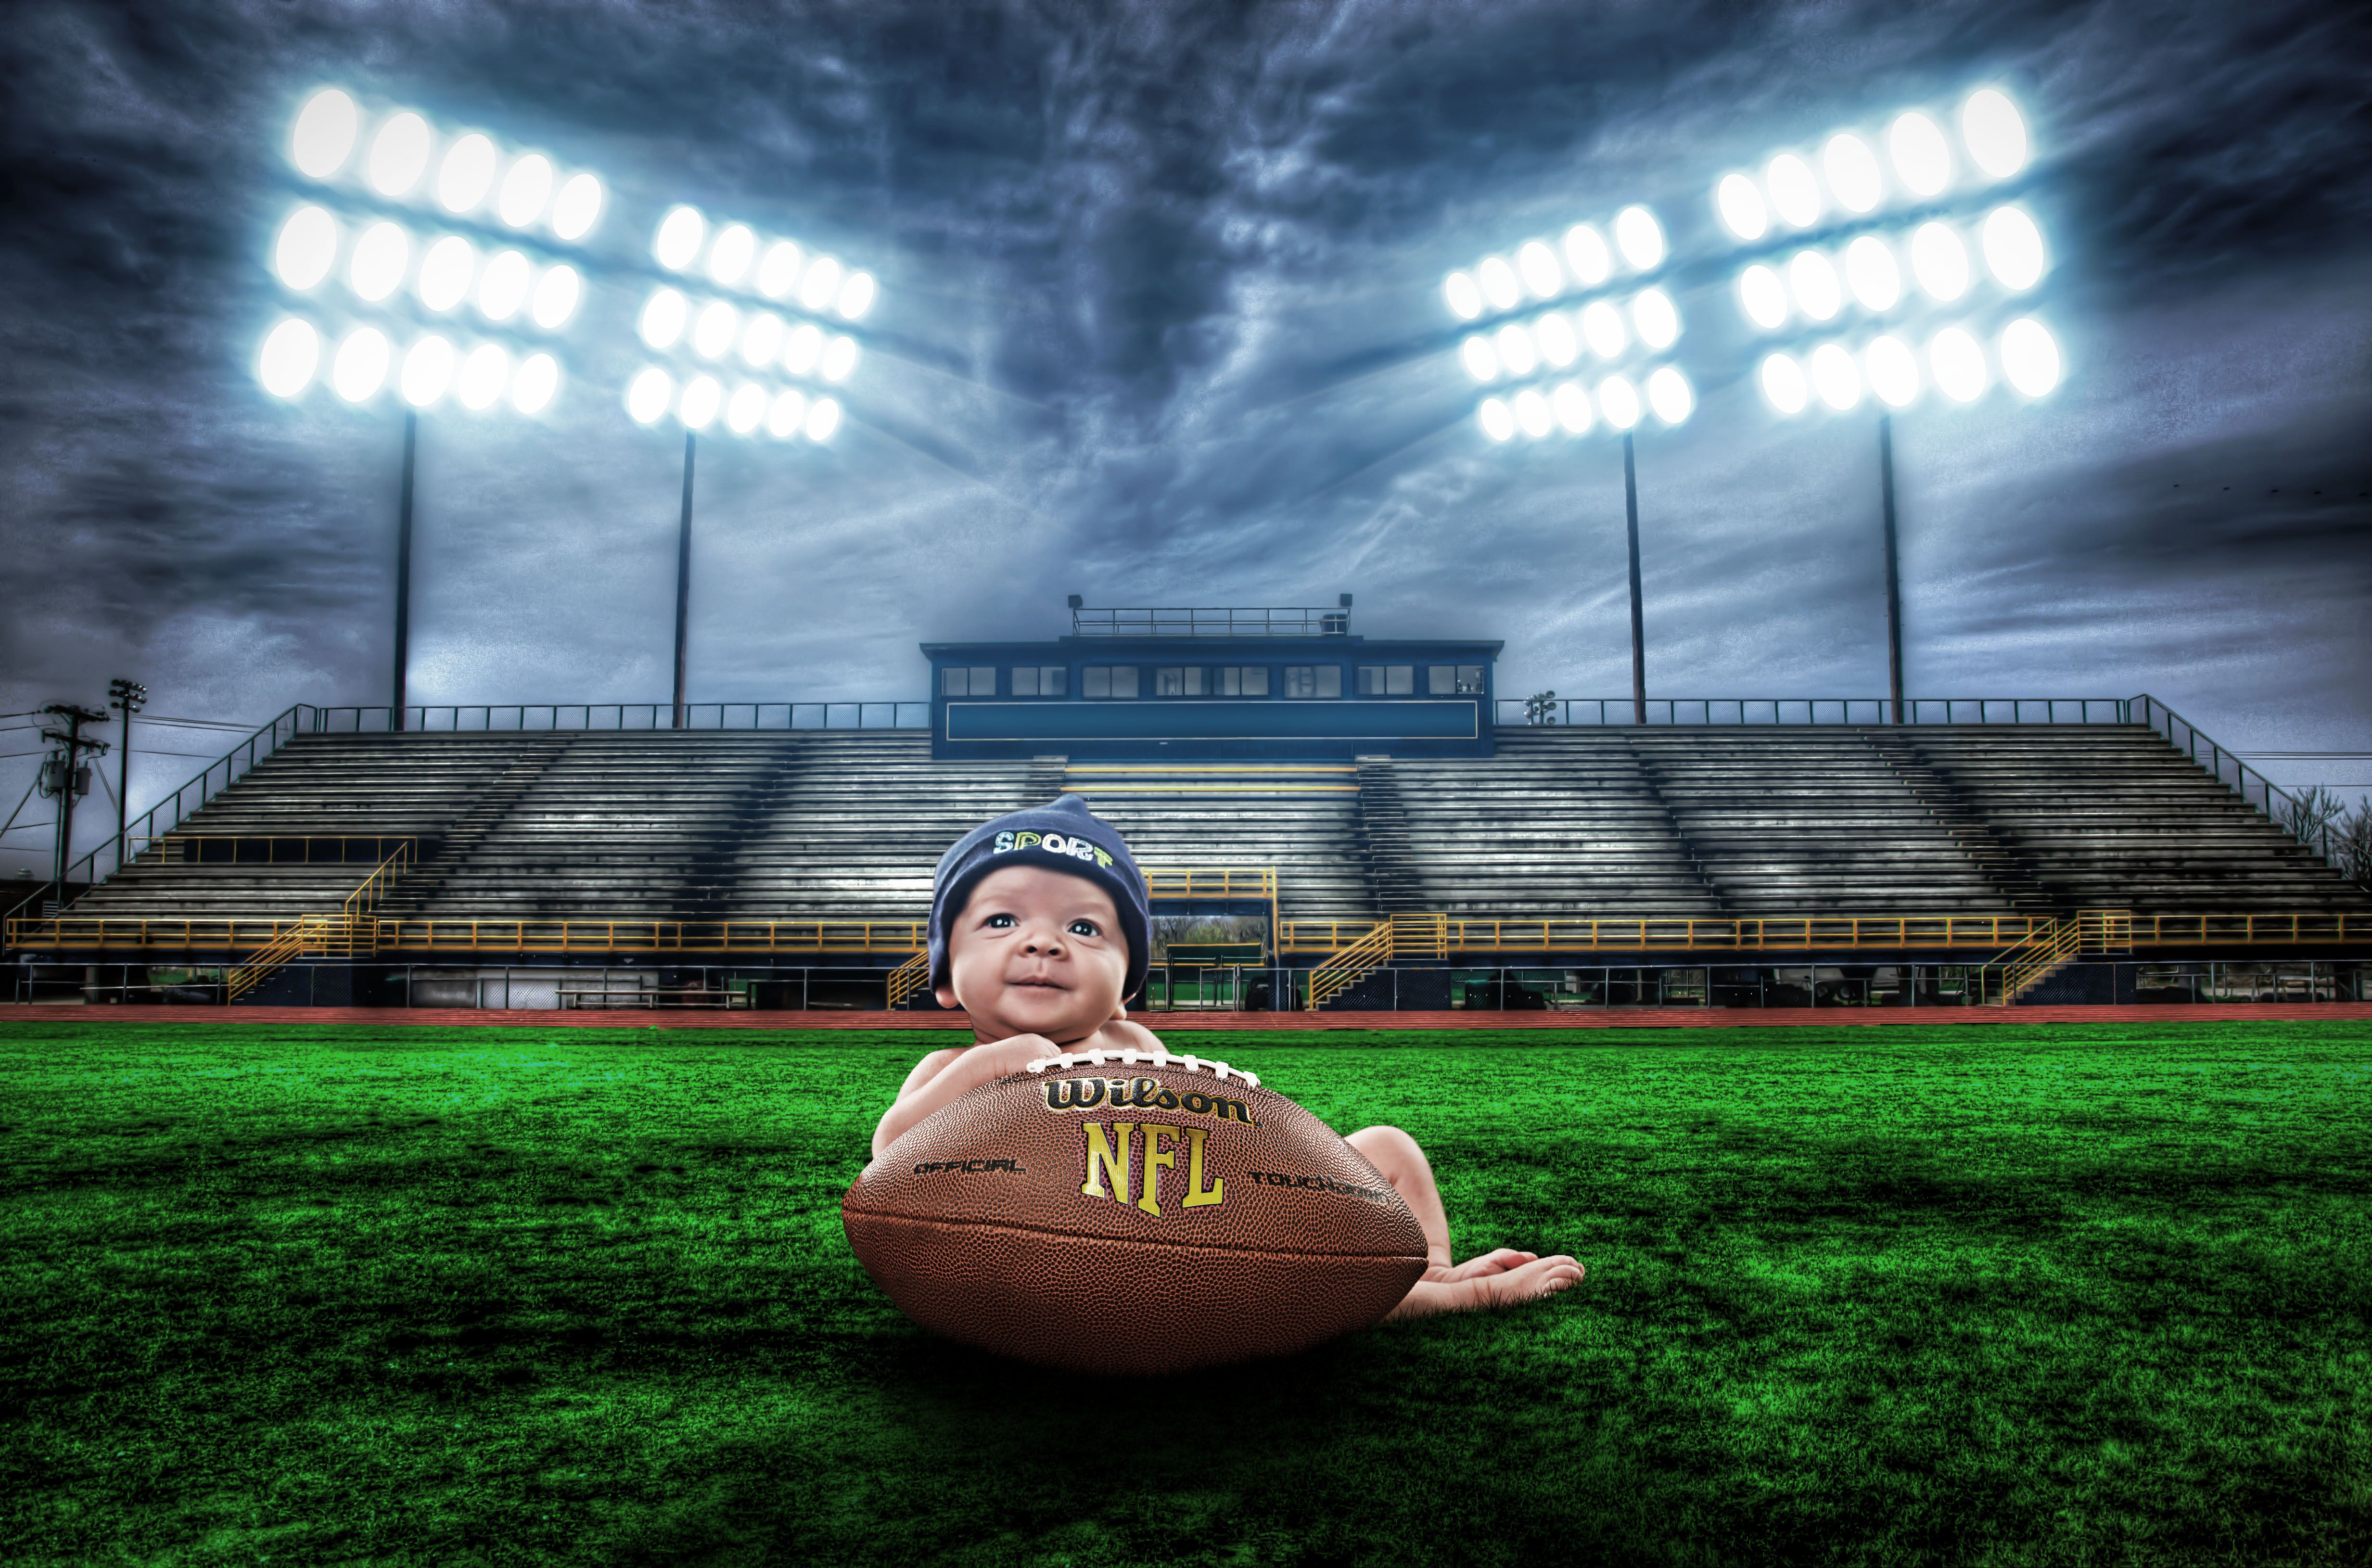 Newborn baby photography football stadium hdr composite lights nfl sports